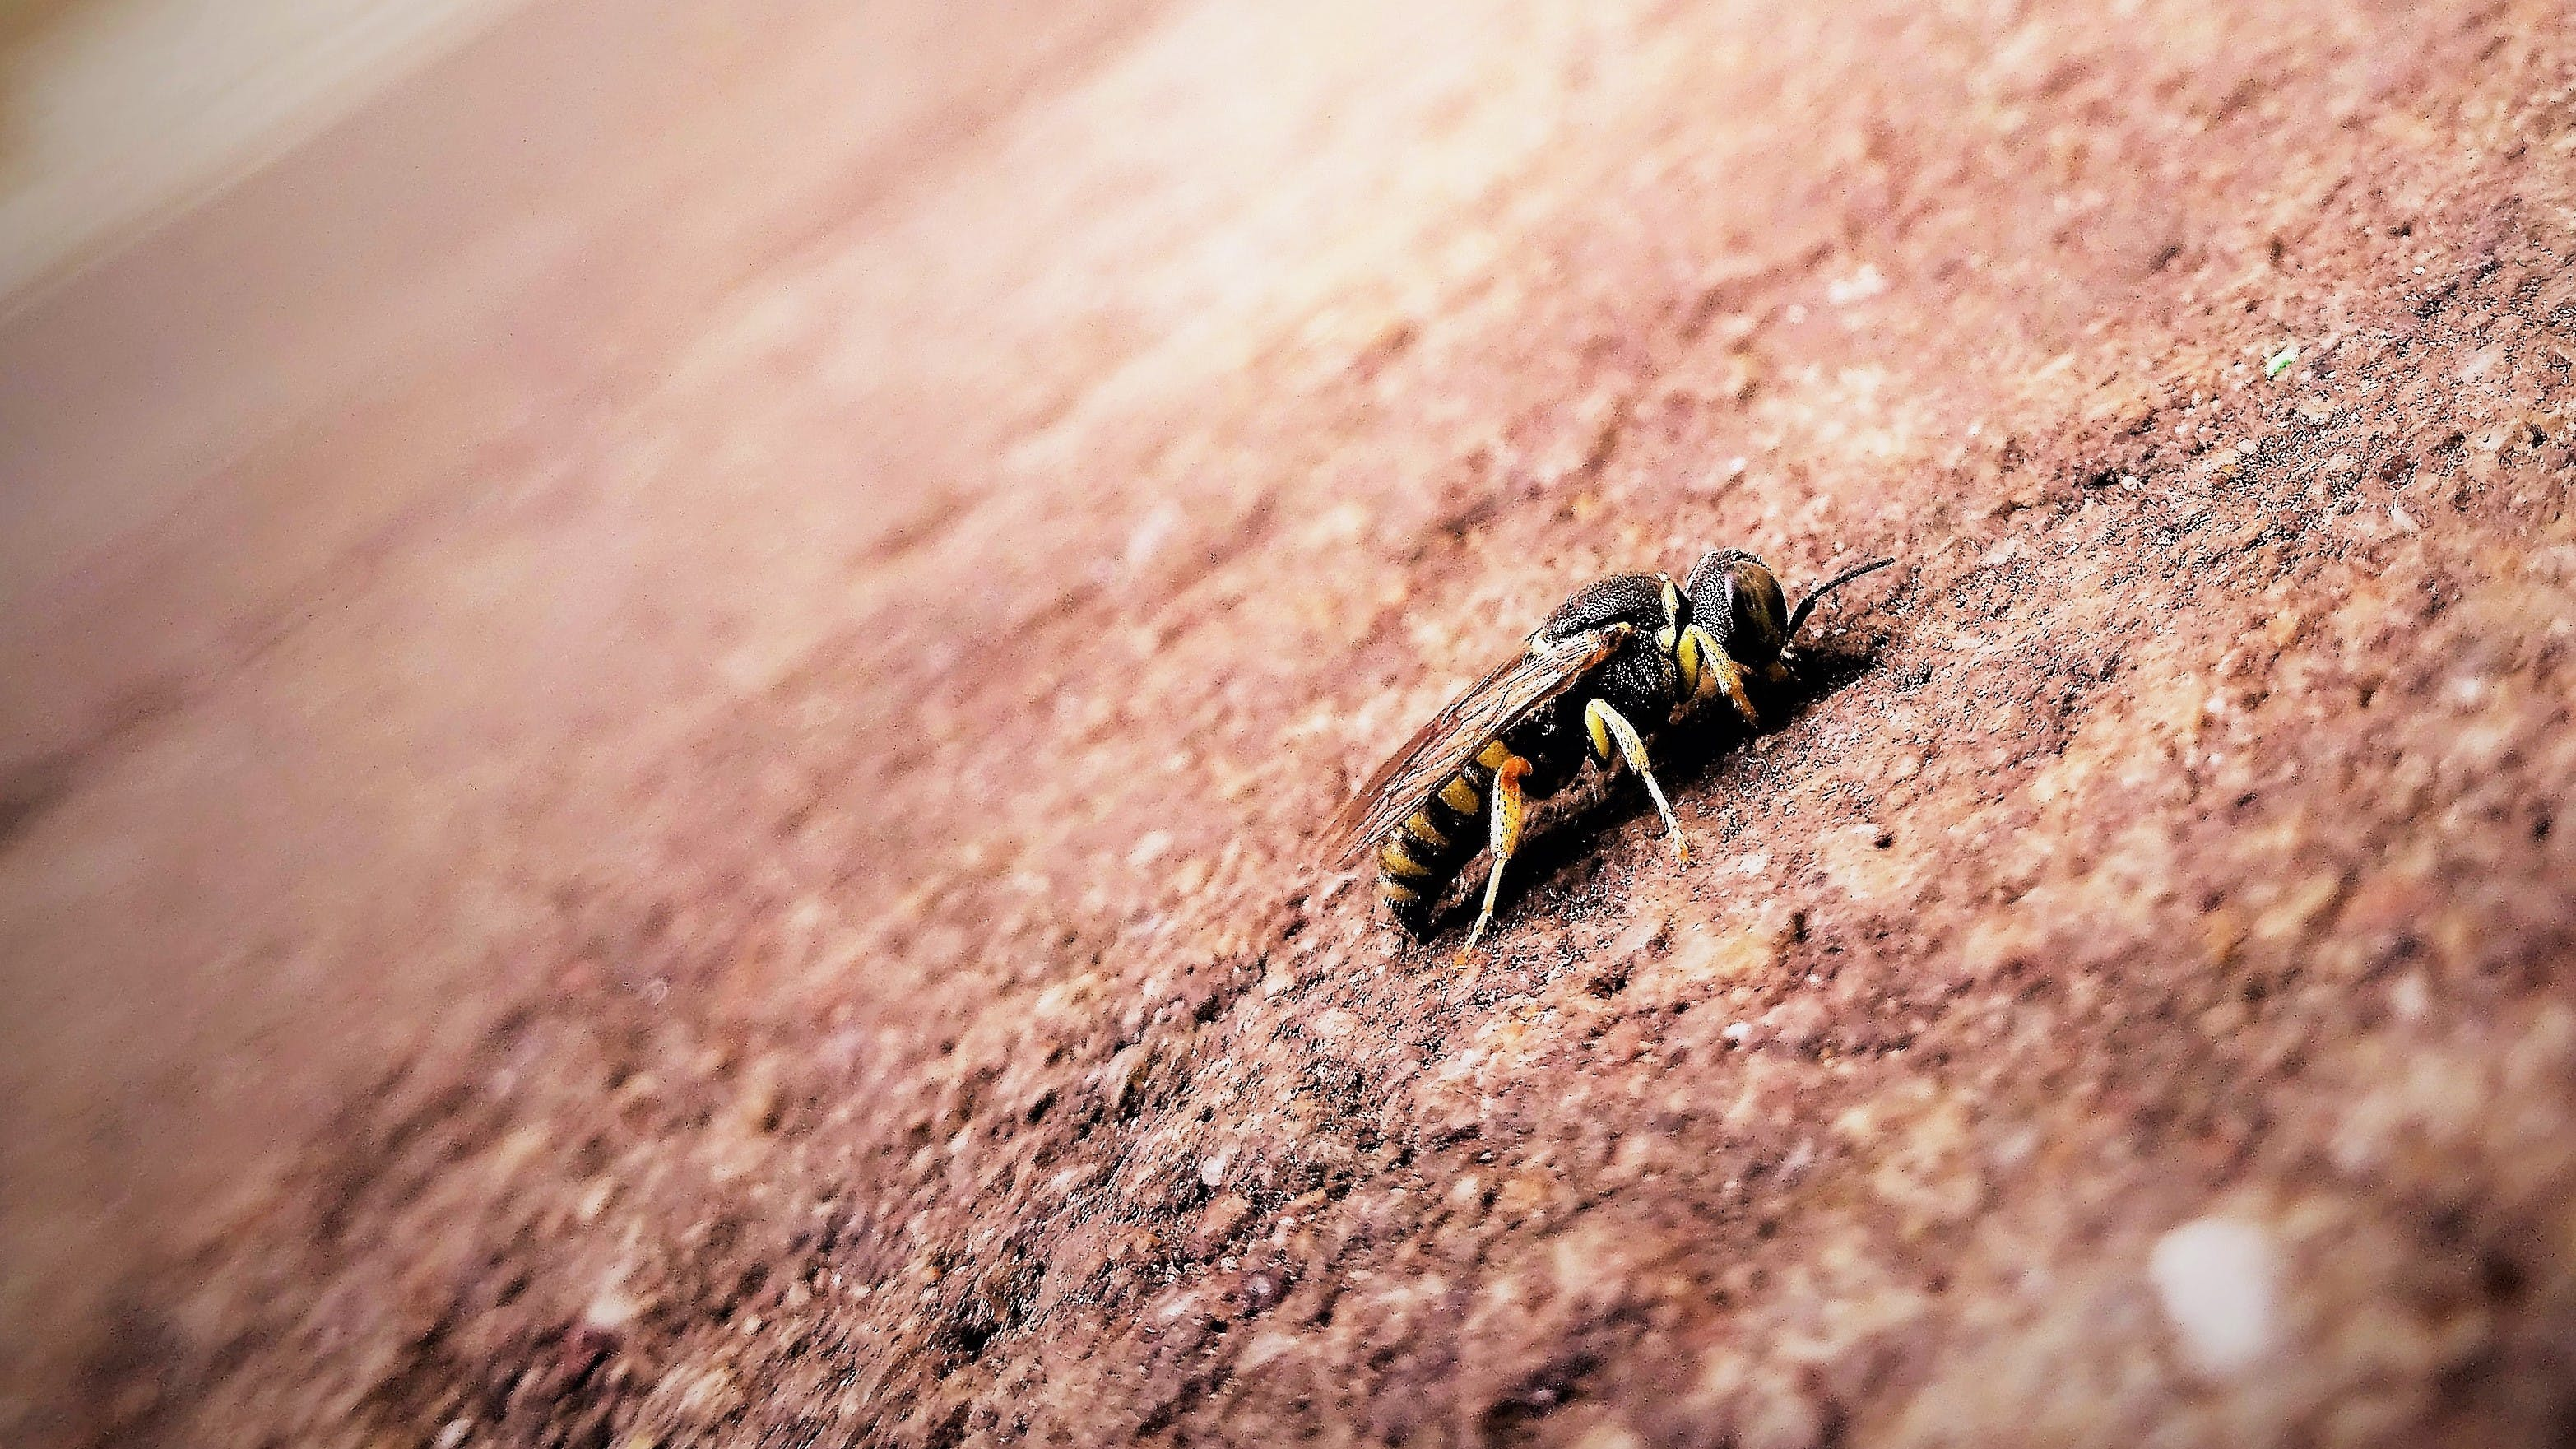 Black and Yellow Bee on Brown Surface